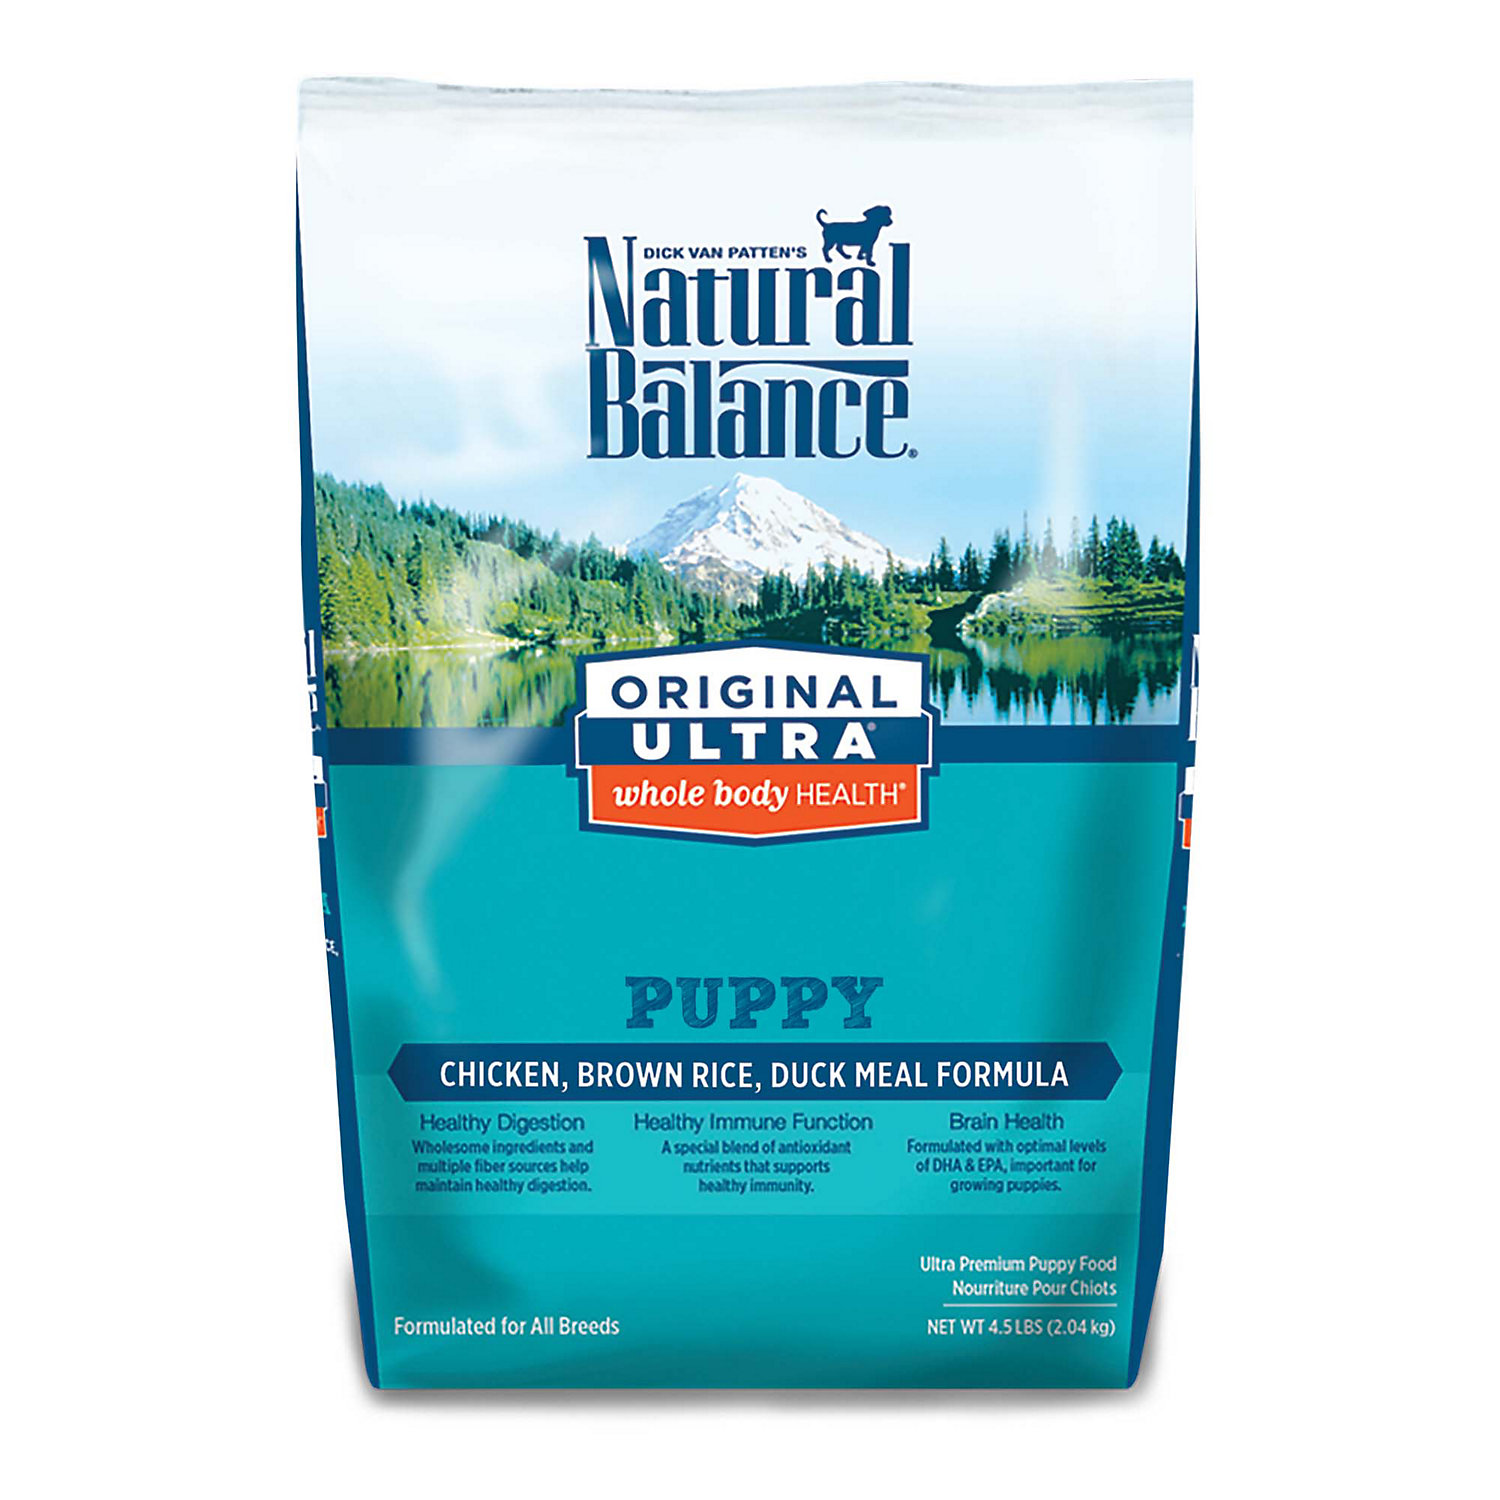 Natural Balance Original Ultra Whole Body Health Chicken Brown Rice Duck Meal Puppy Food 4.5 Lbs.